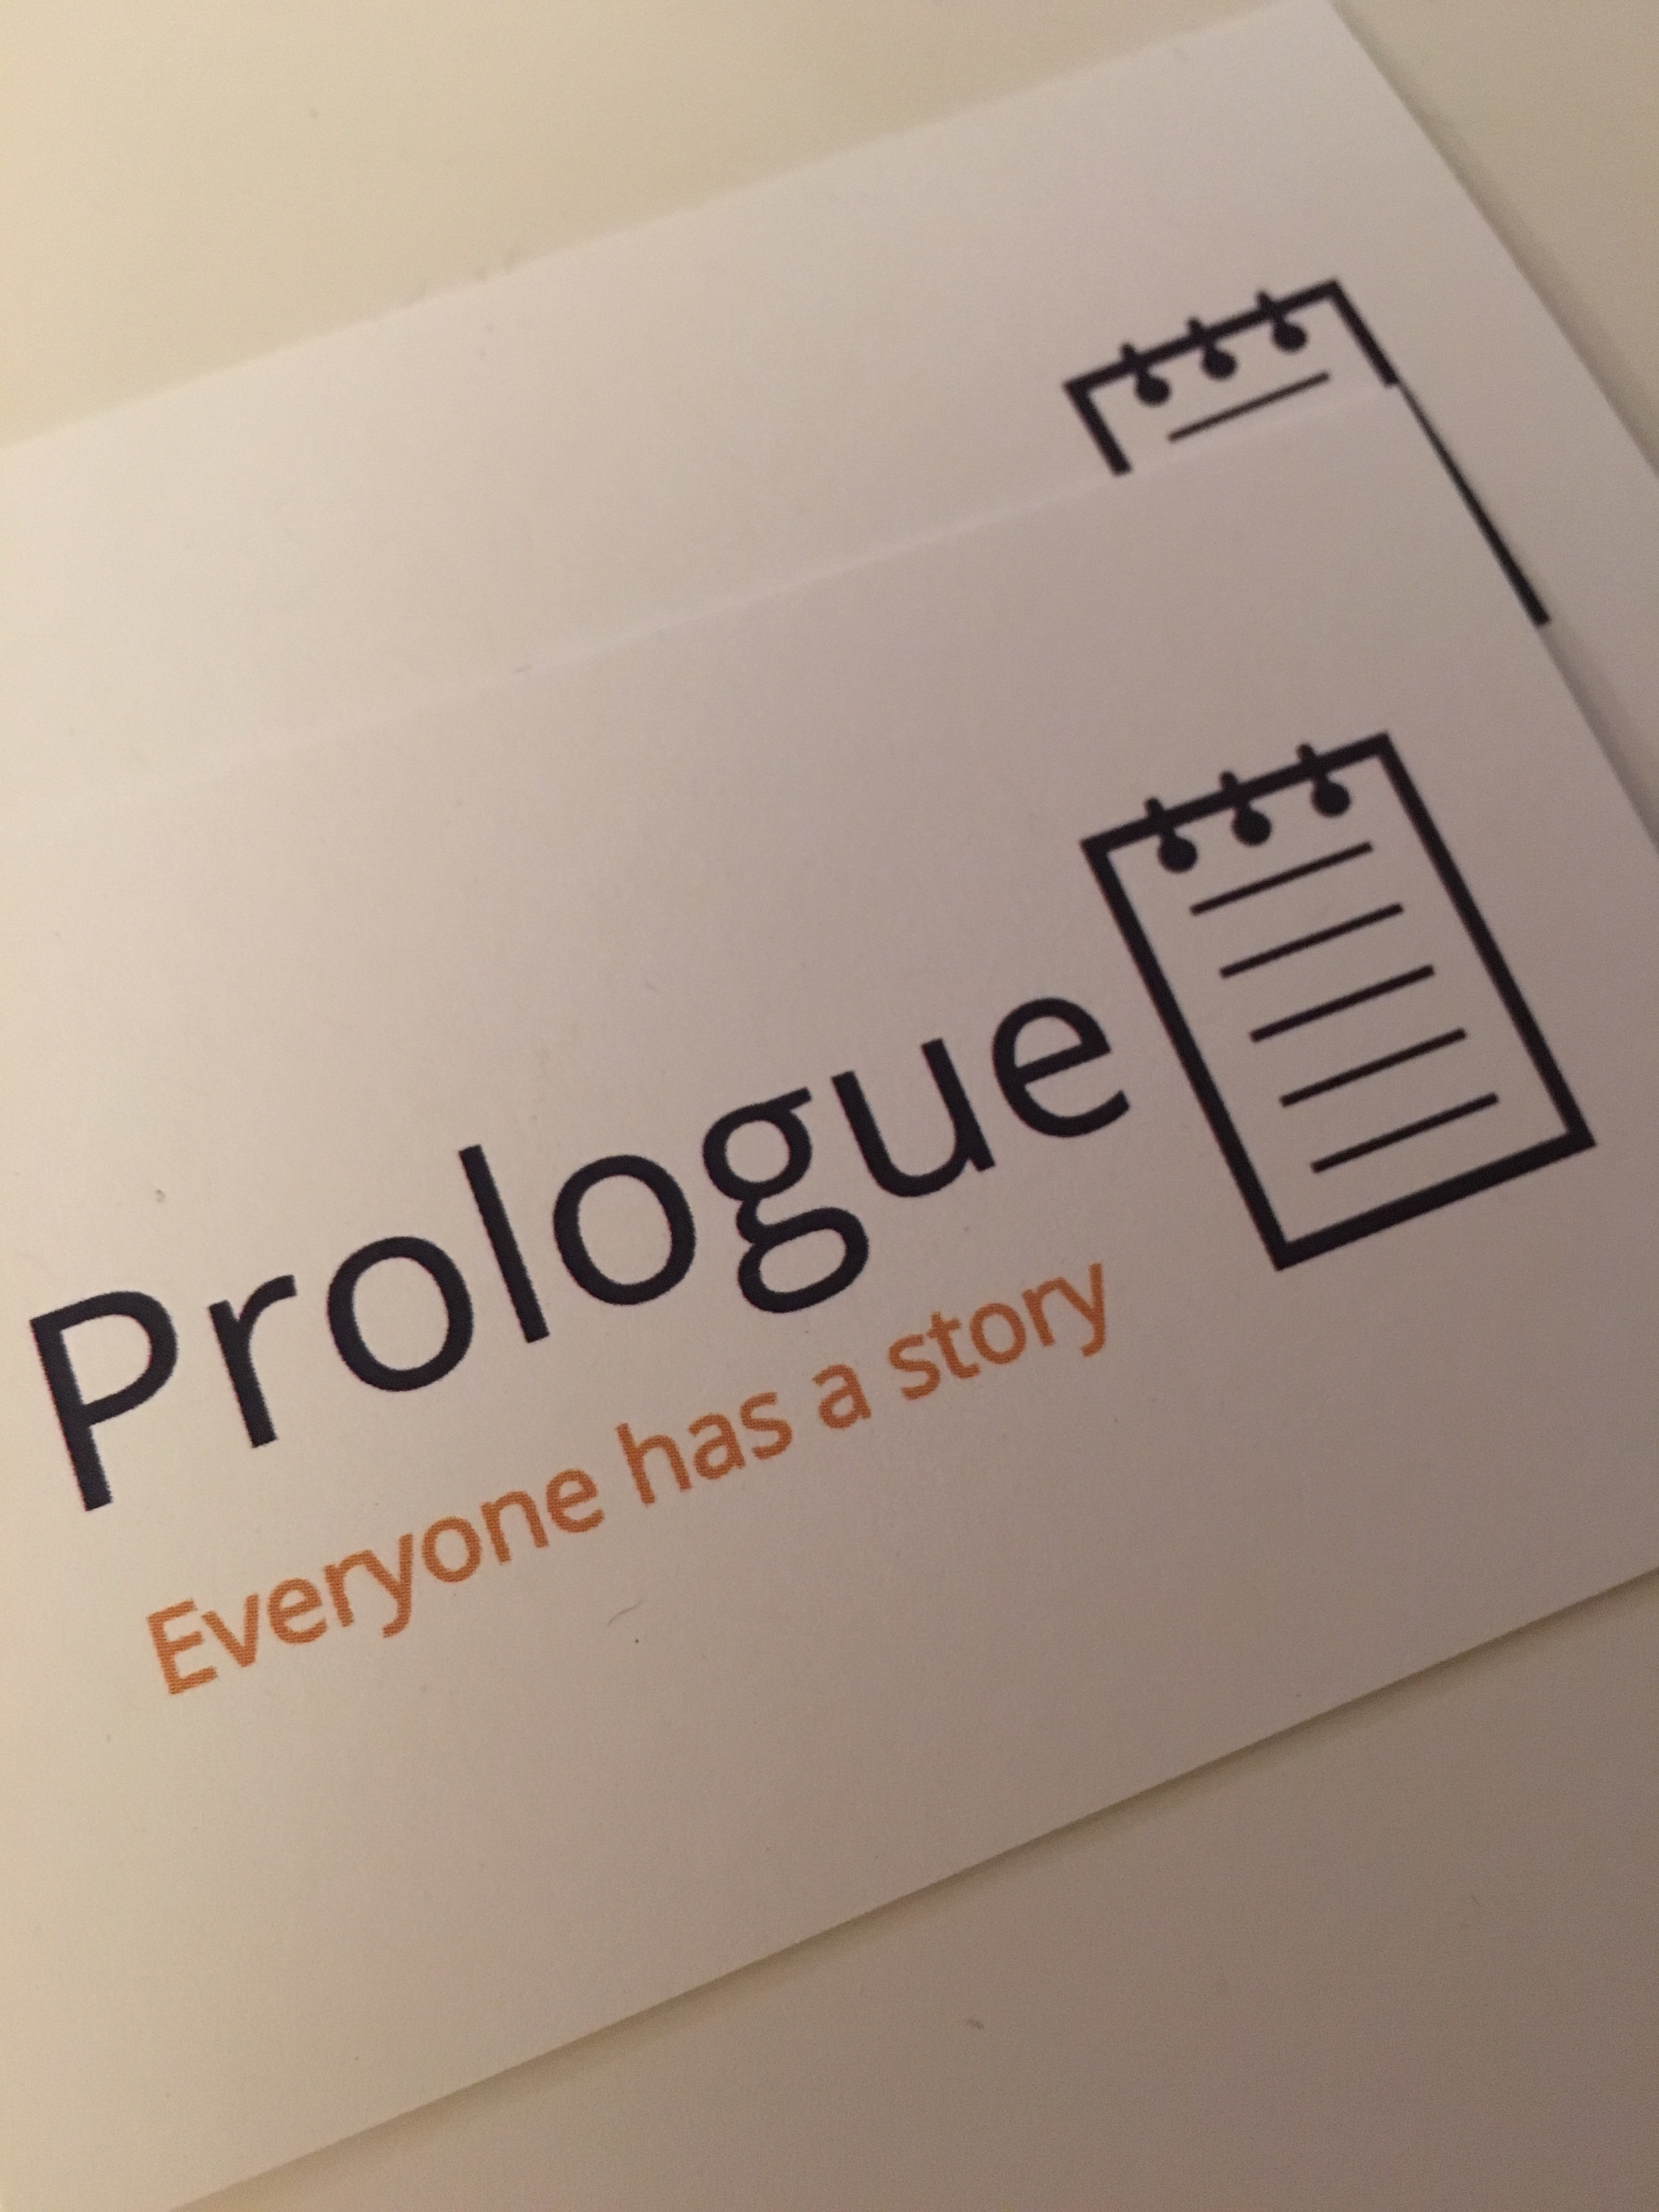 Meet Prologue. What's your story?